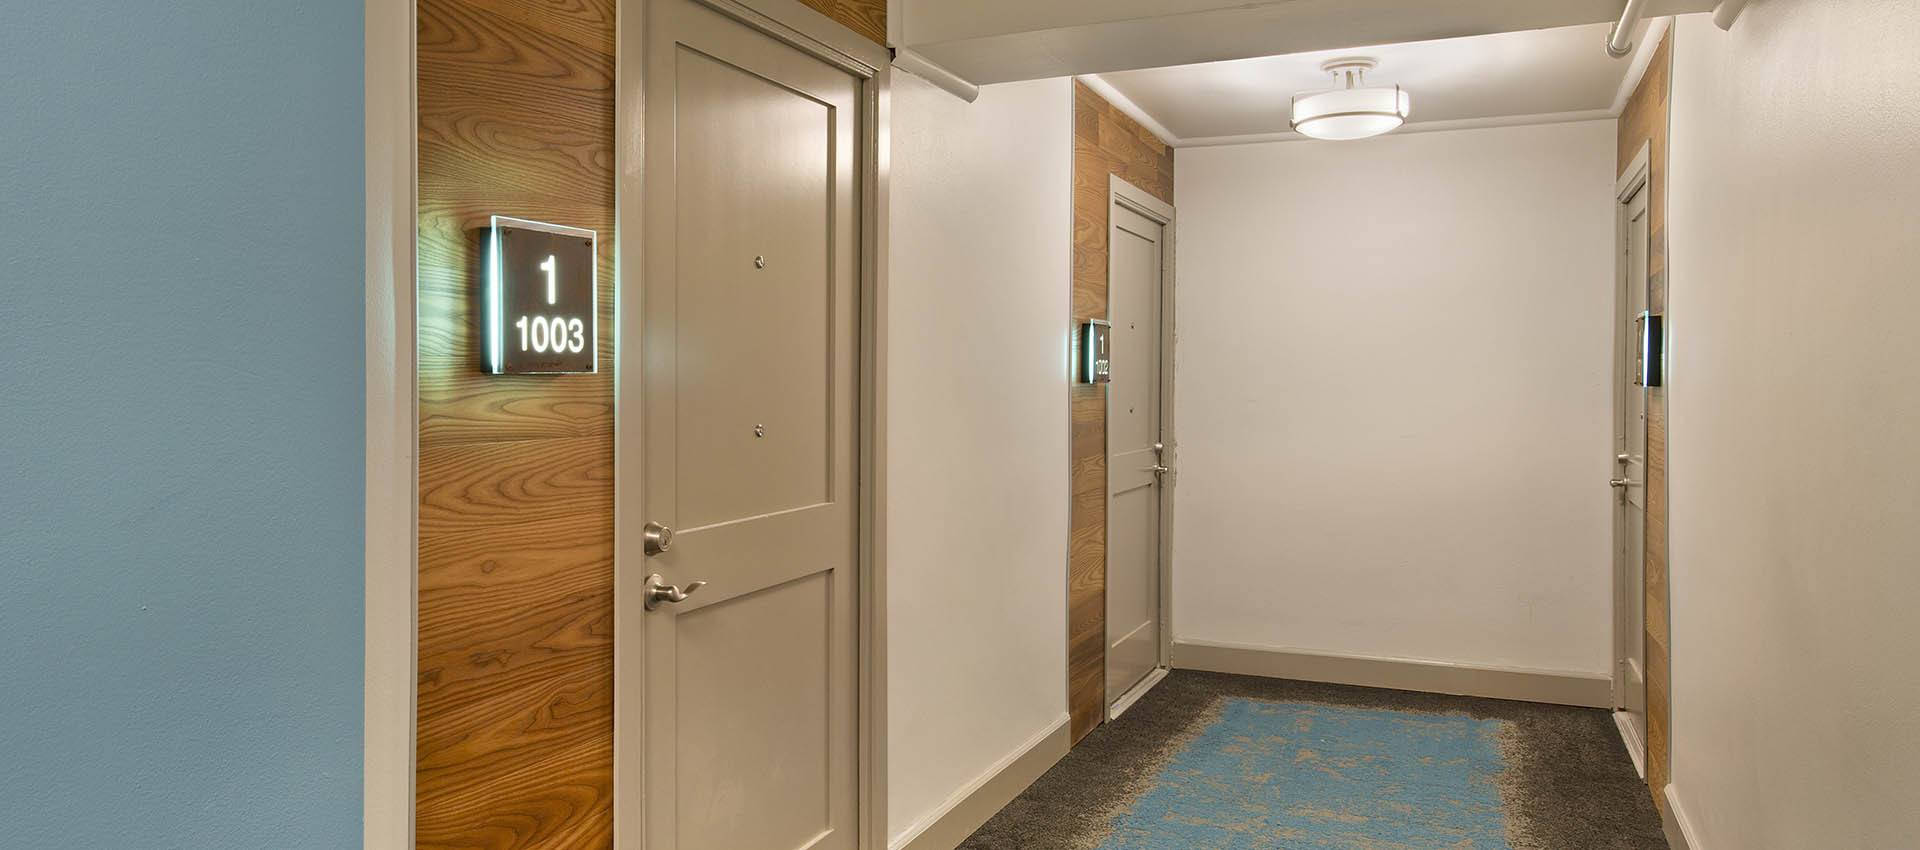 Sequoia offers great housing discounts and perks to on-site employees